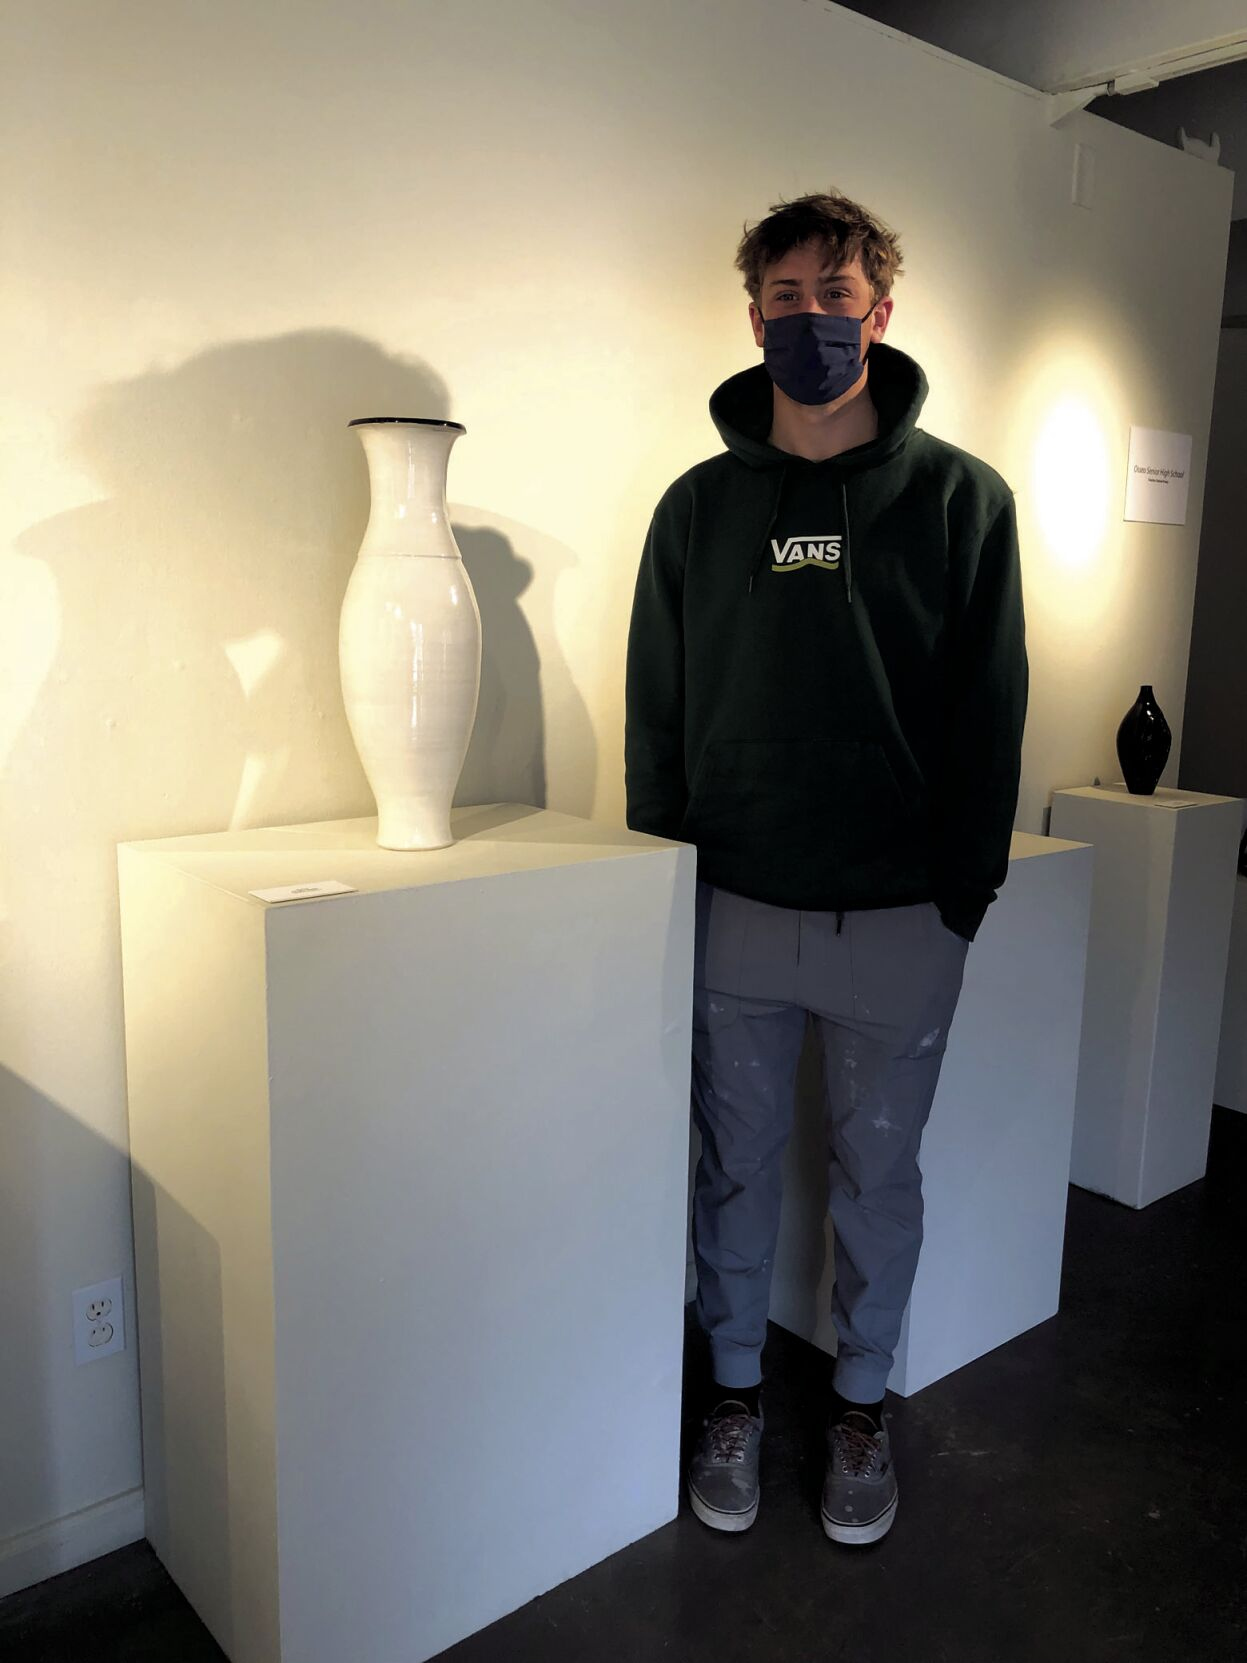 In sports and pottery, Osseo's Vaughn Ruska embraces the work